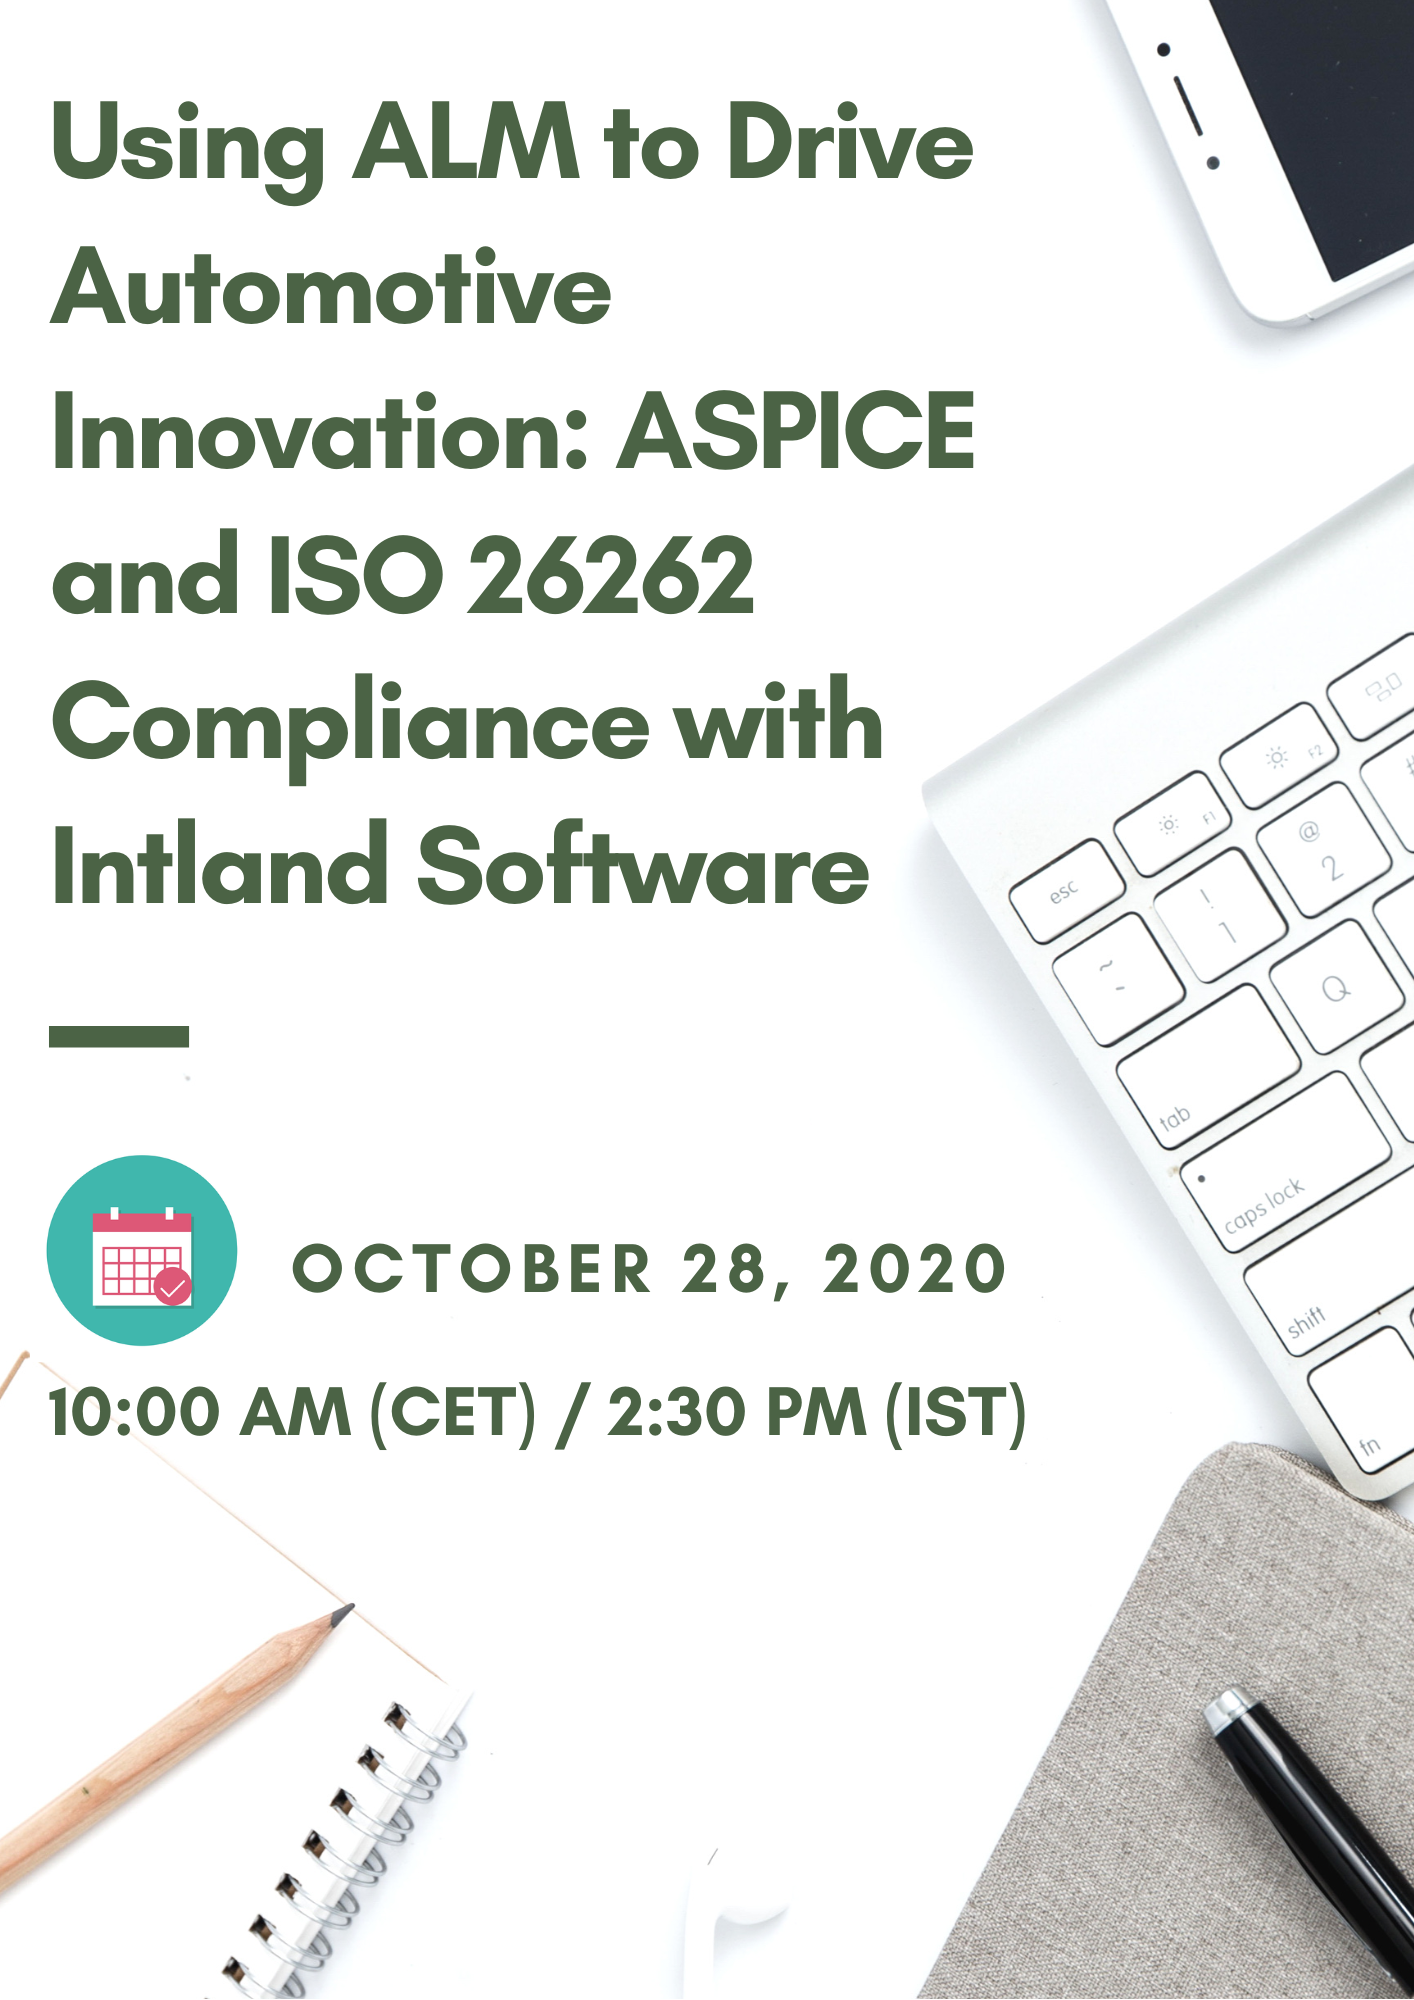 Using ALM to Drive Automotive Innovation: ASPICE and ISO 26262 Compliance with Intland Software